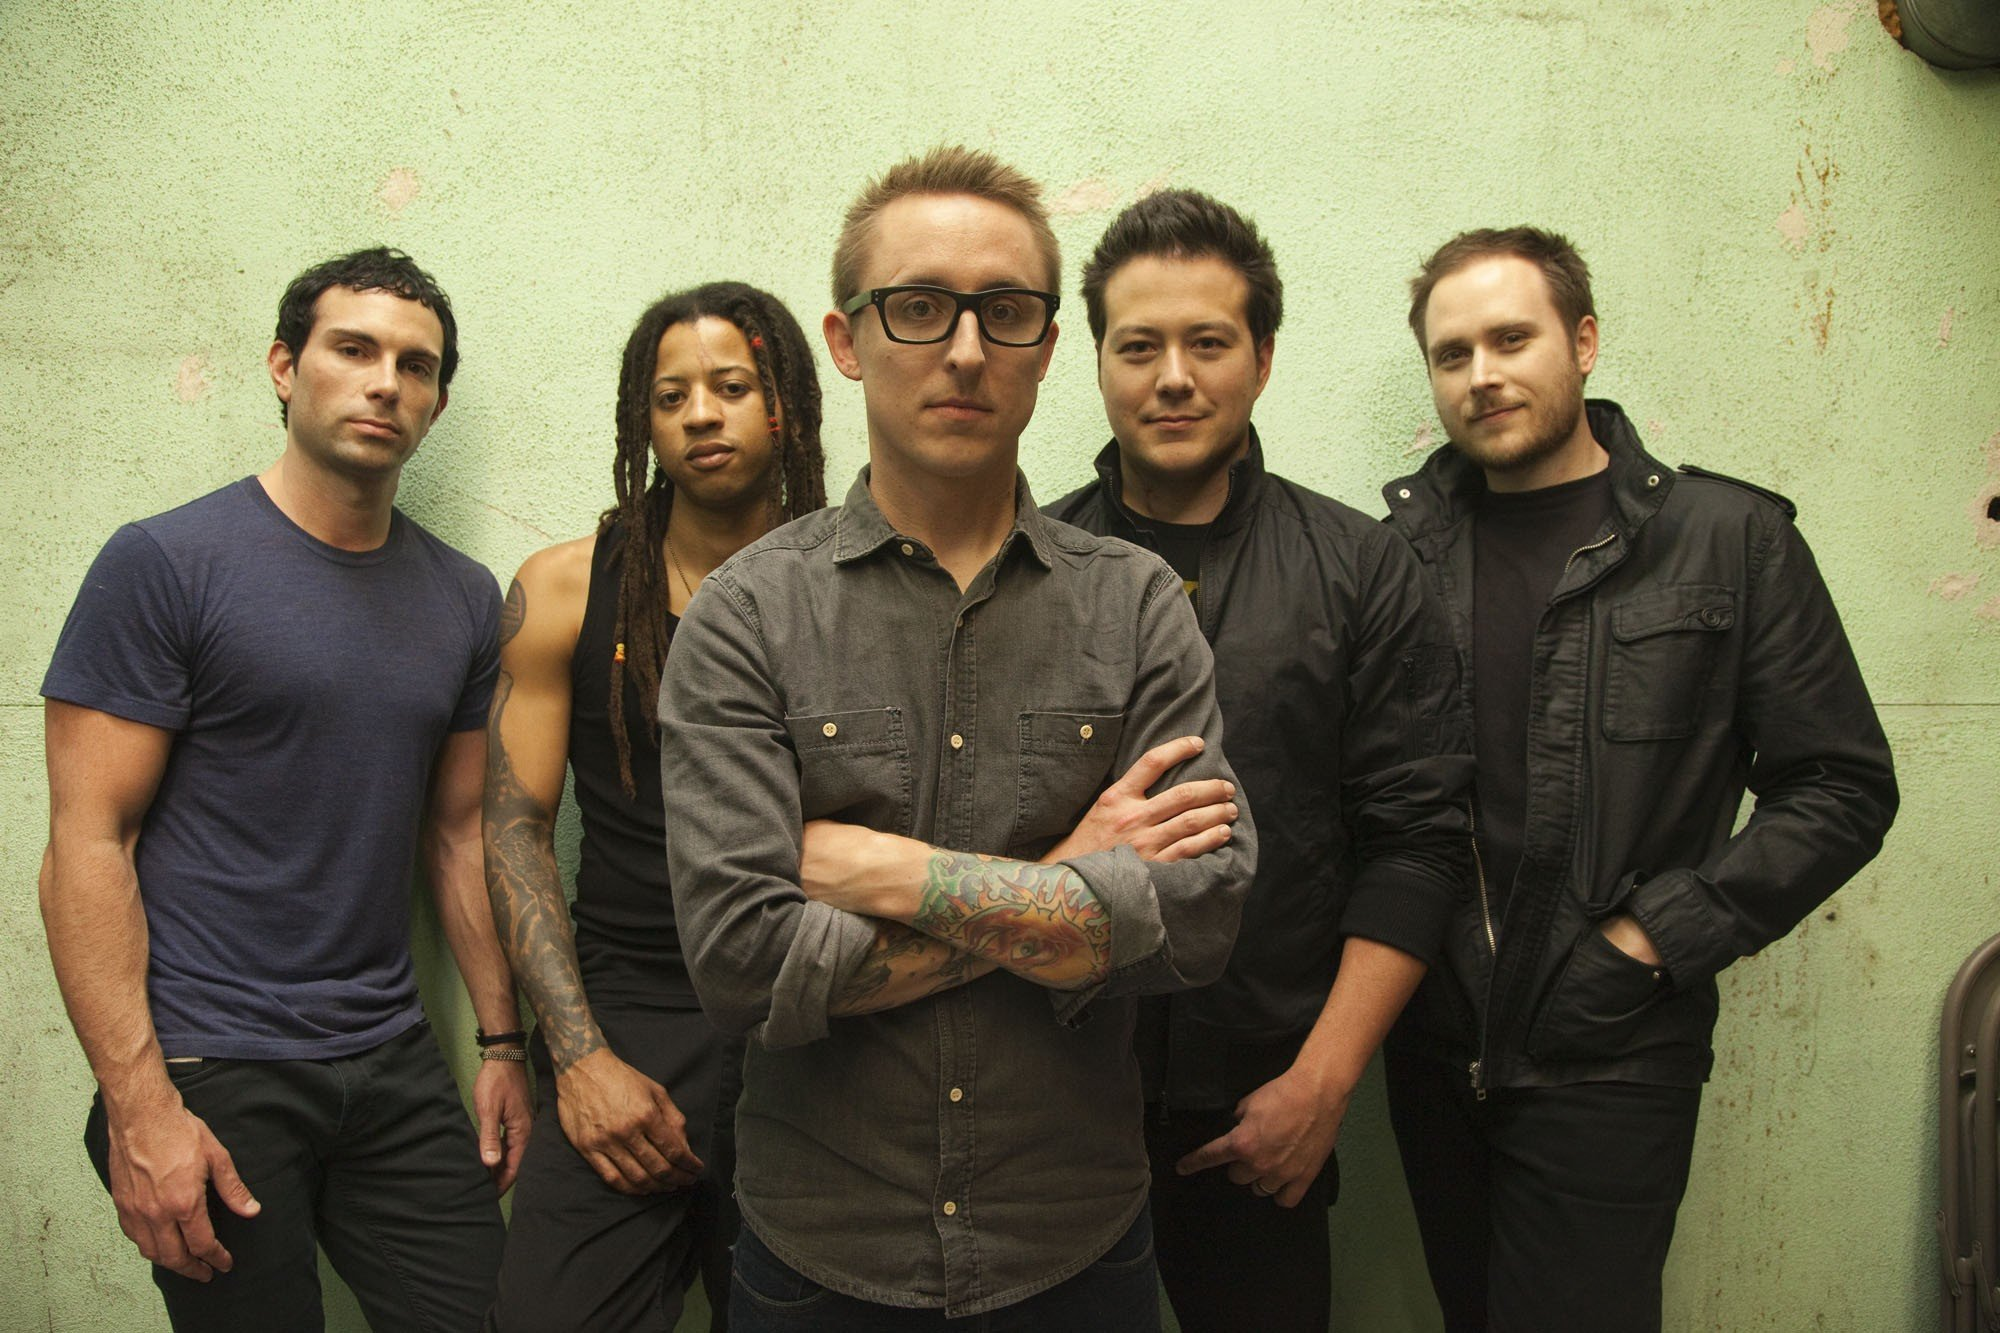 Pop-punk rockers Yellowcard will perform, with New Found Glory, Oct. 31 at the Sands Bethlehem Event Center in Bethlehem.  (Courtesy Photo)